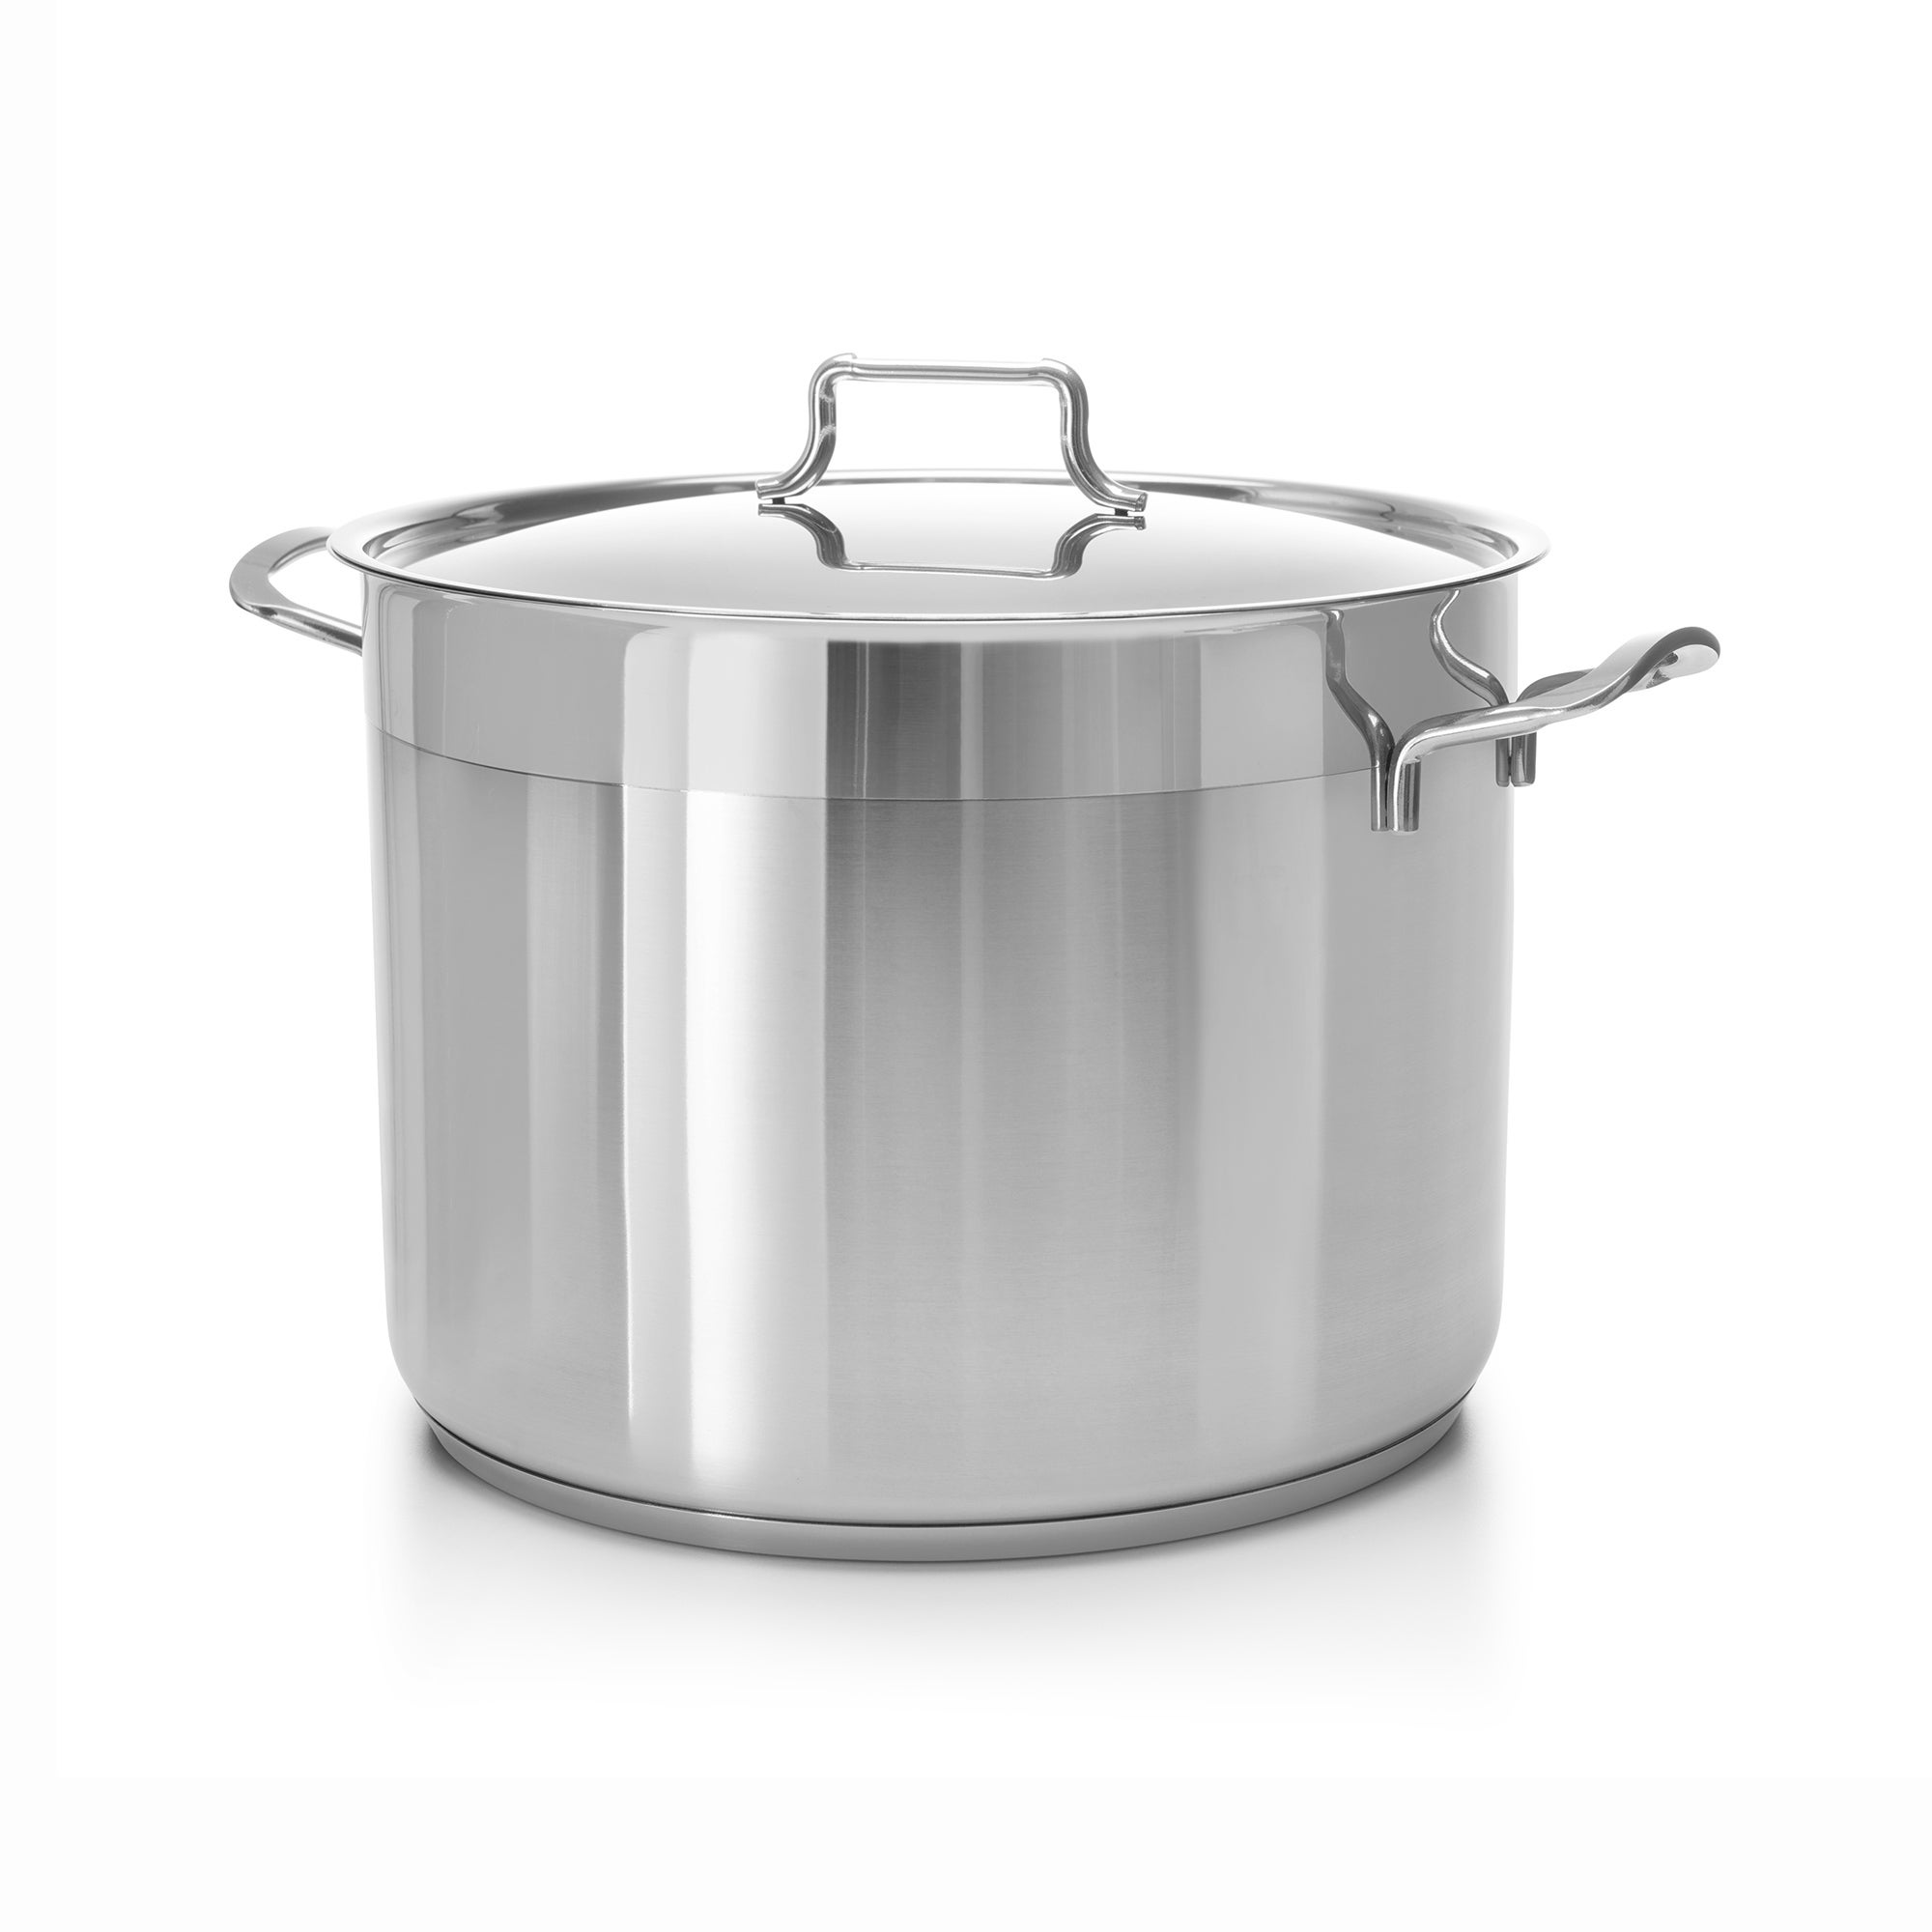 Shop Hascevher Classic 1810 Stainless Steel Stockpot Covered